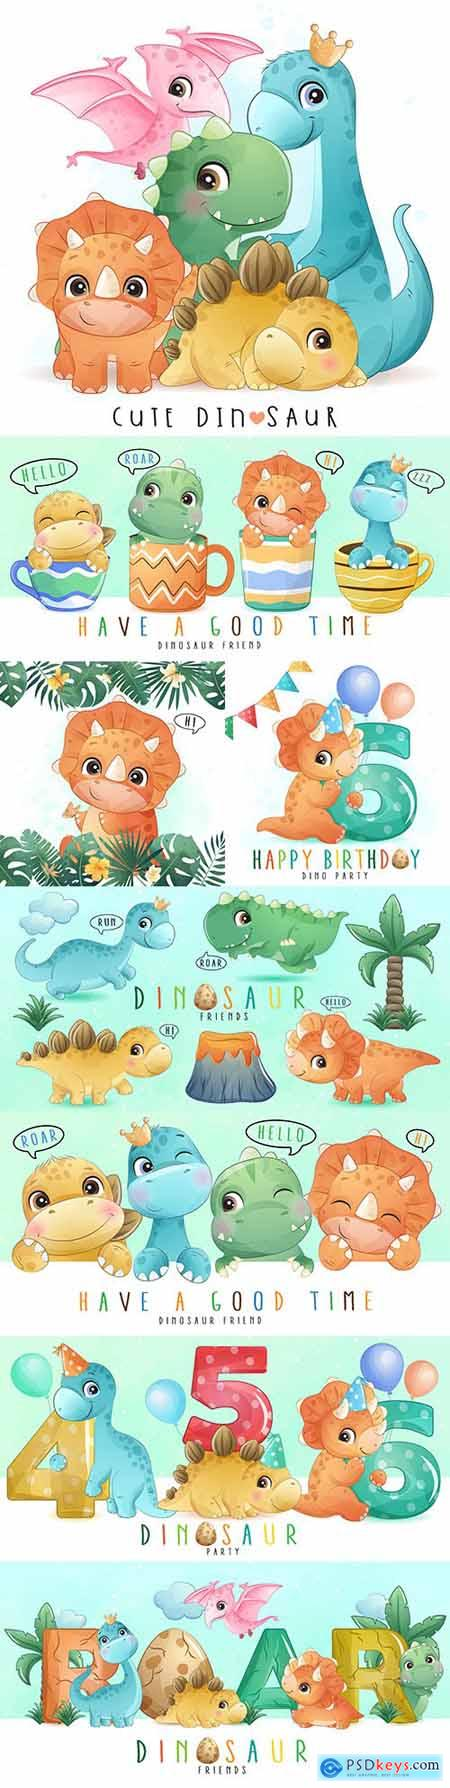 Cute little dinosaur watercolor illustrations collection